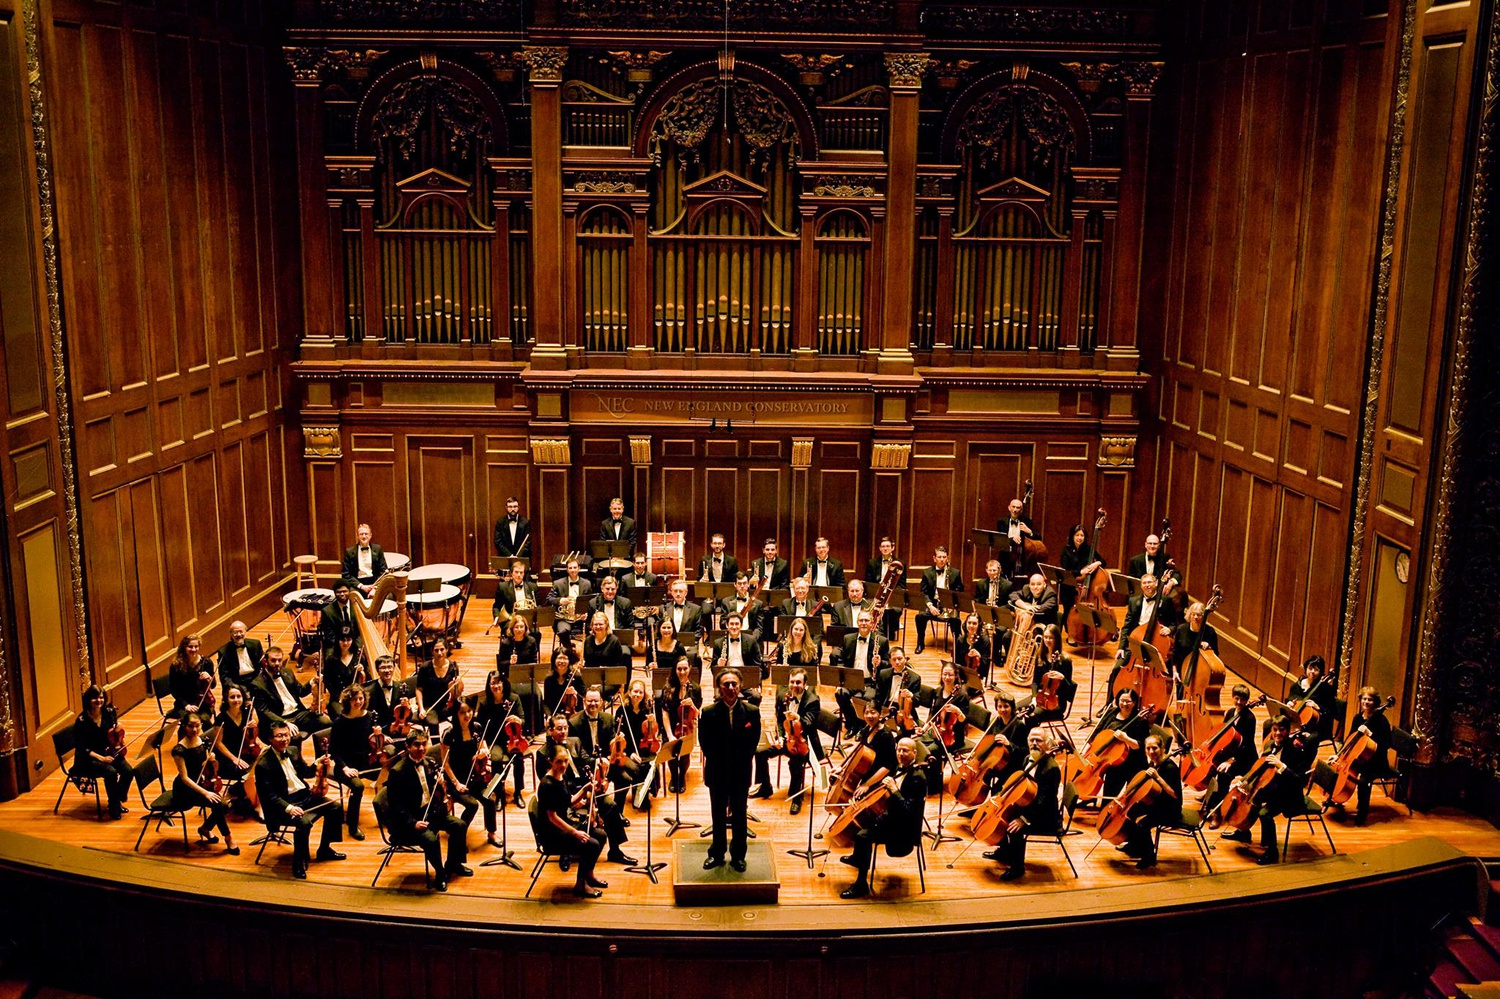 The Longwood Symphony Orchestra is an orchestra comprised of medical professionals.